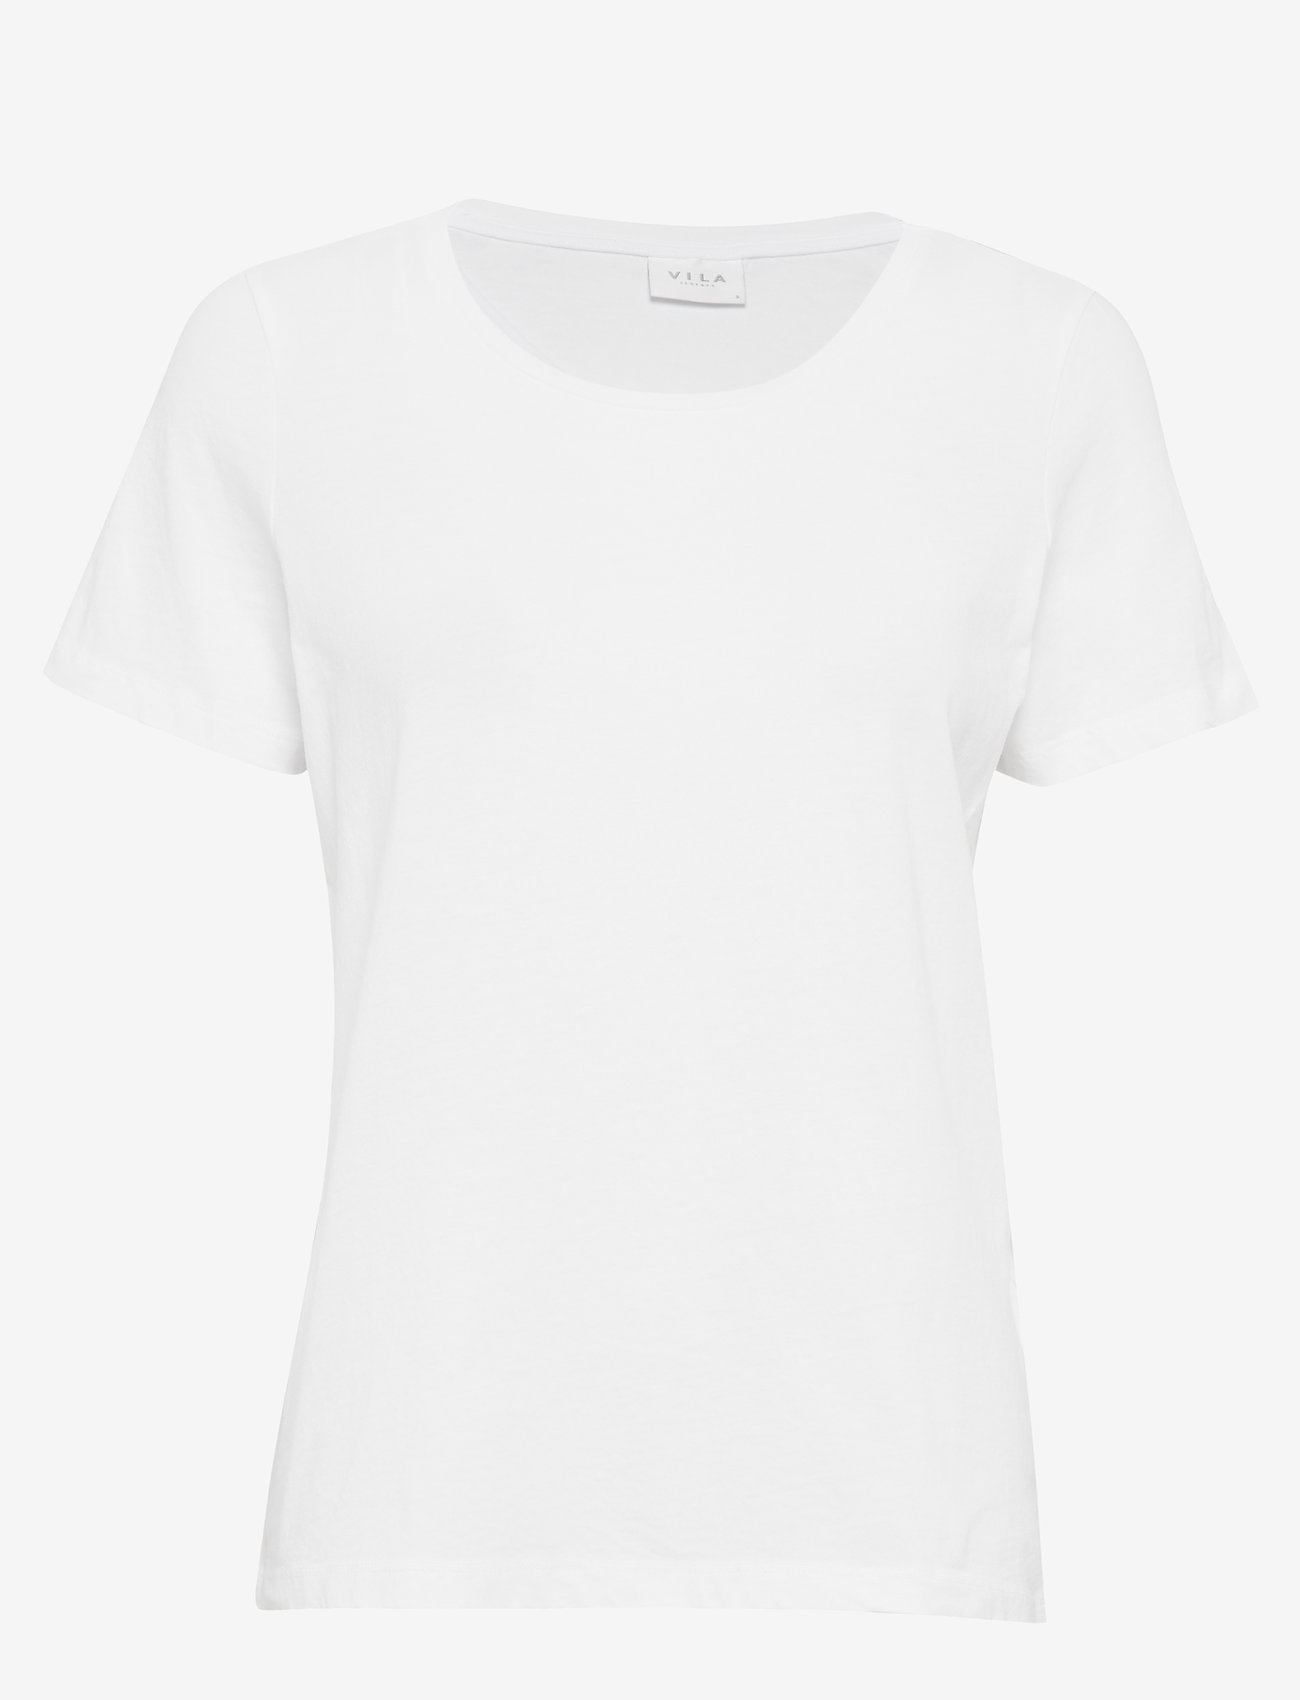 Vila - VISUS O-NECK S/S T-SHIRT/SU - NOOS - t-shirts - optical snow - 0